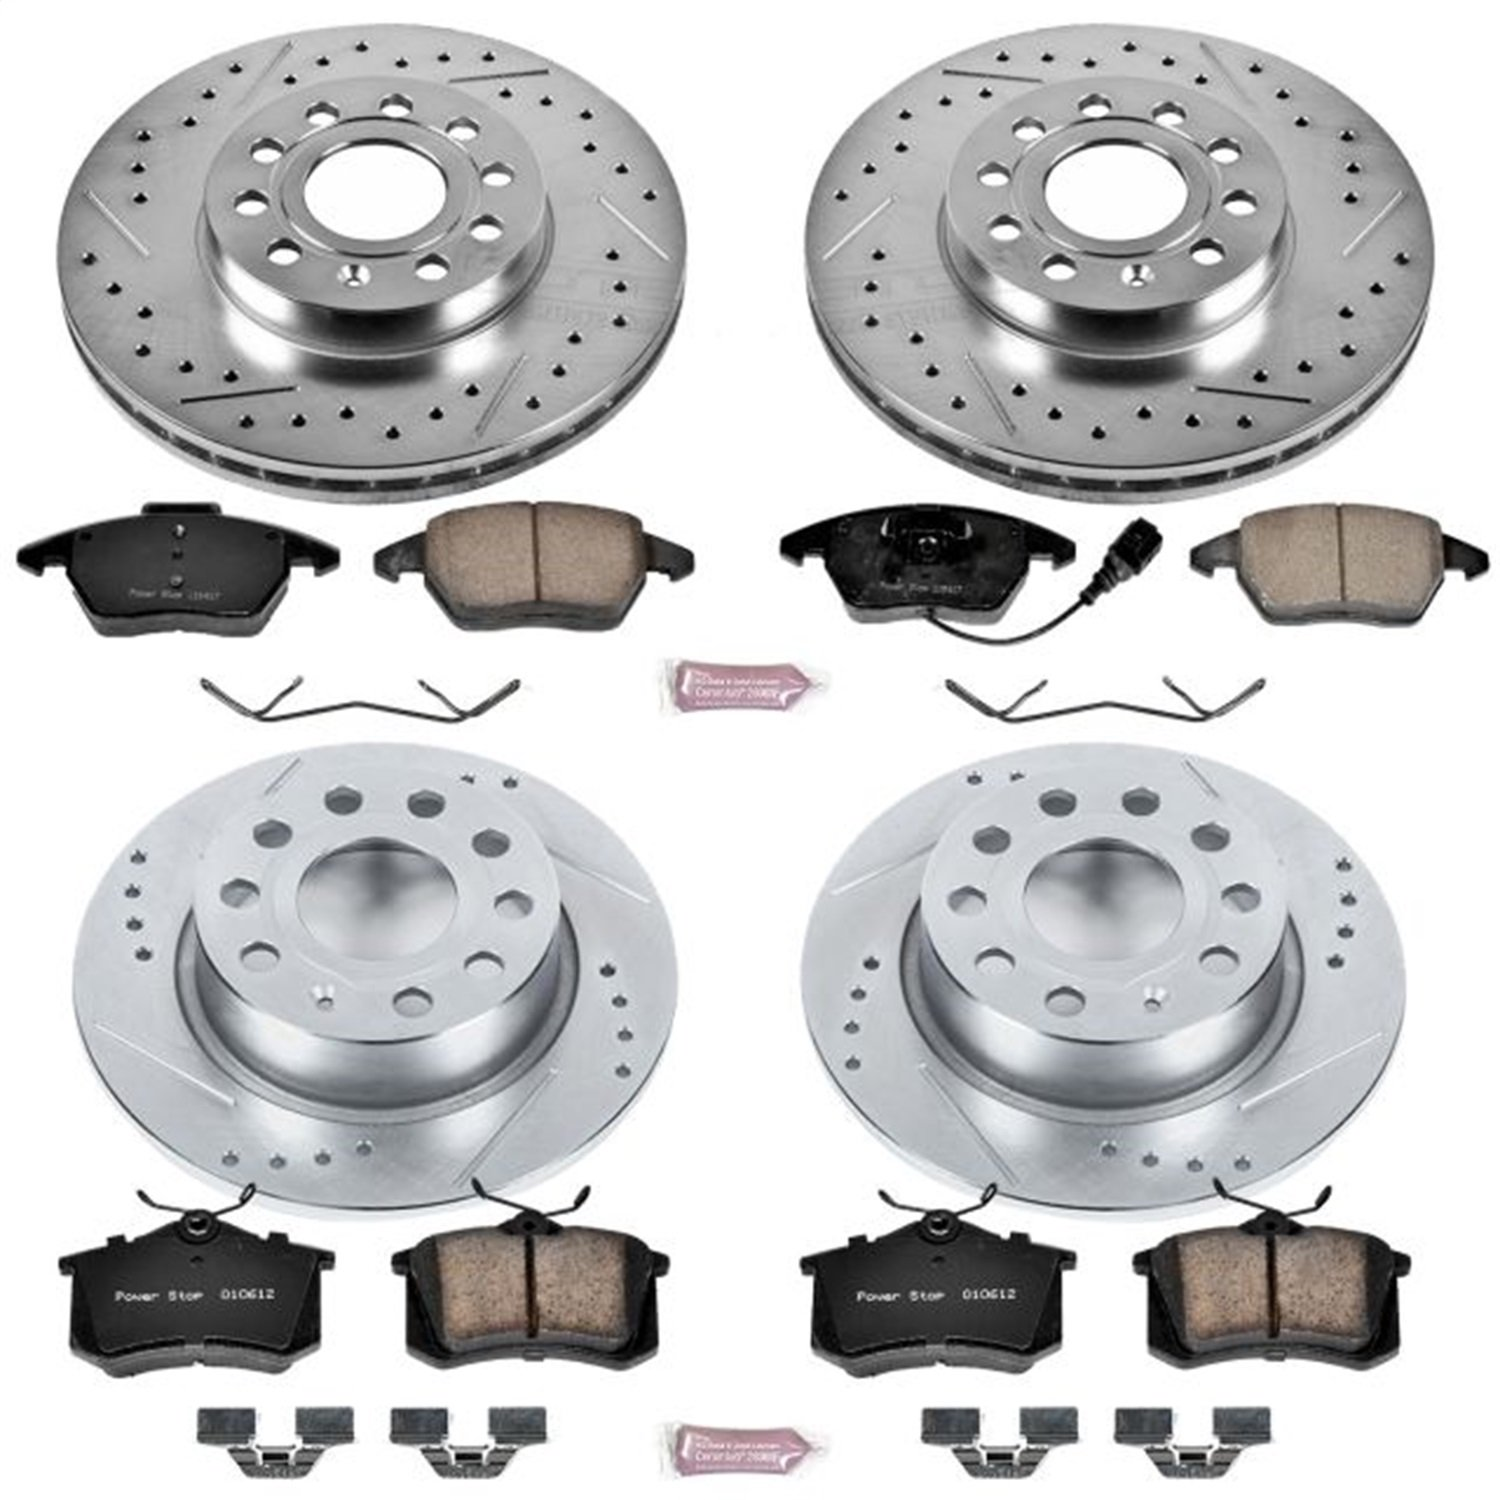 Power Stop K5749 Front and Rear Z23 Evolution Brake Kit with Drilled/Slotted Rotors and Ceramic Brake Pads